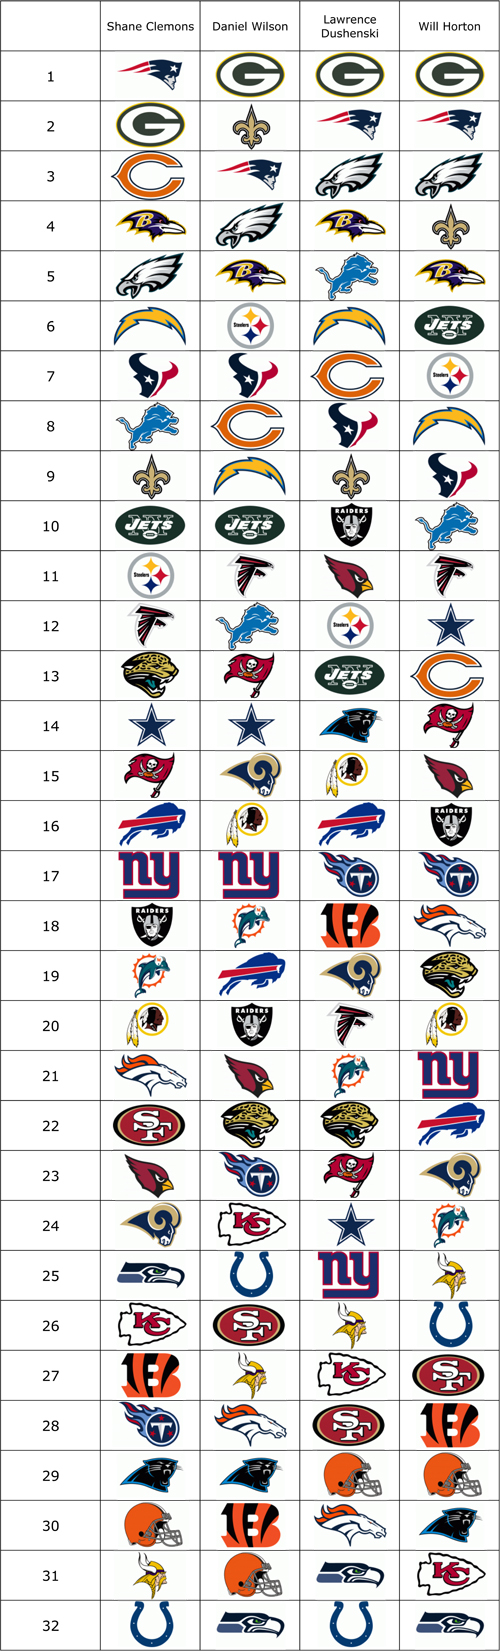 2011 NFL Power Rankings: Week 2 | This Given Sunday